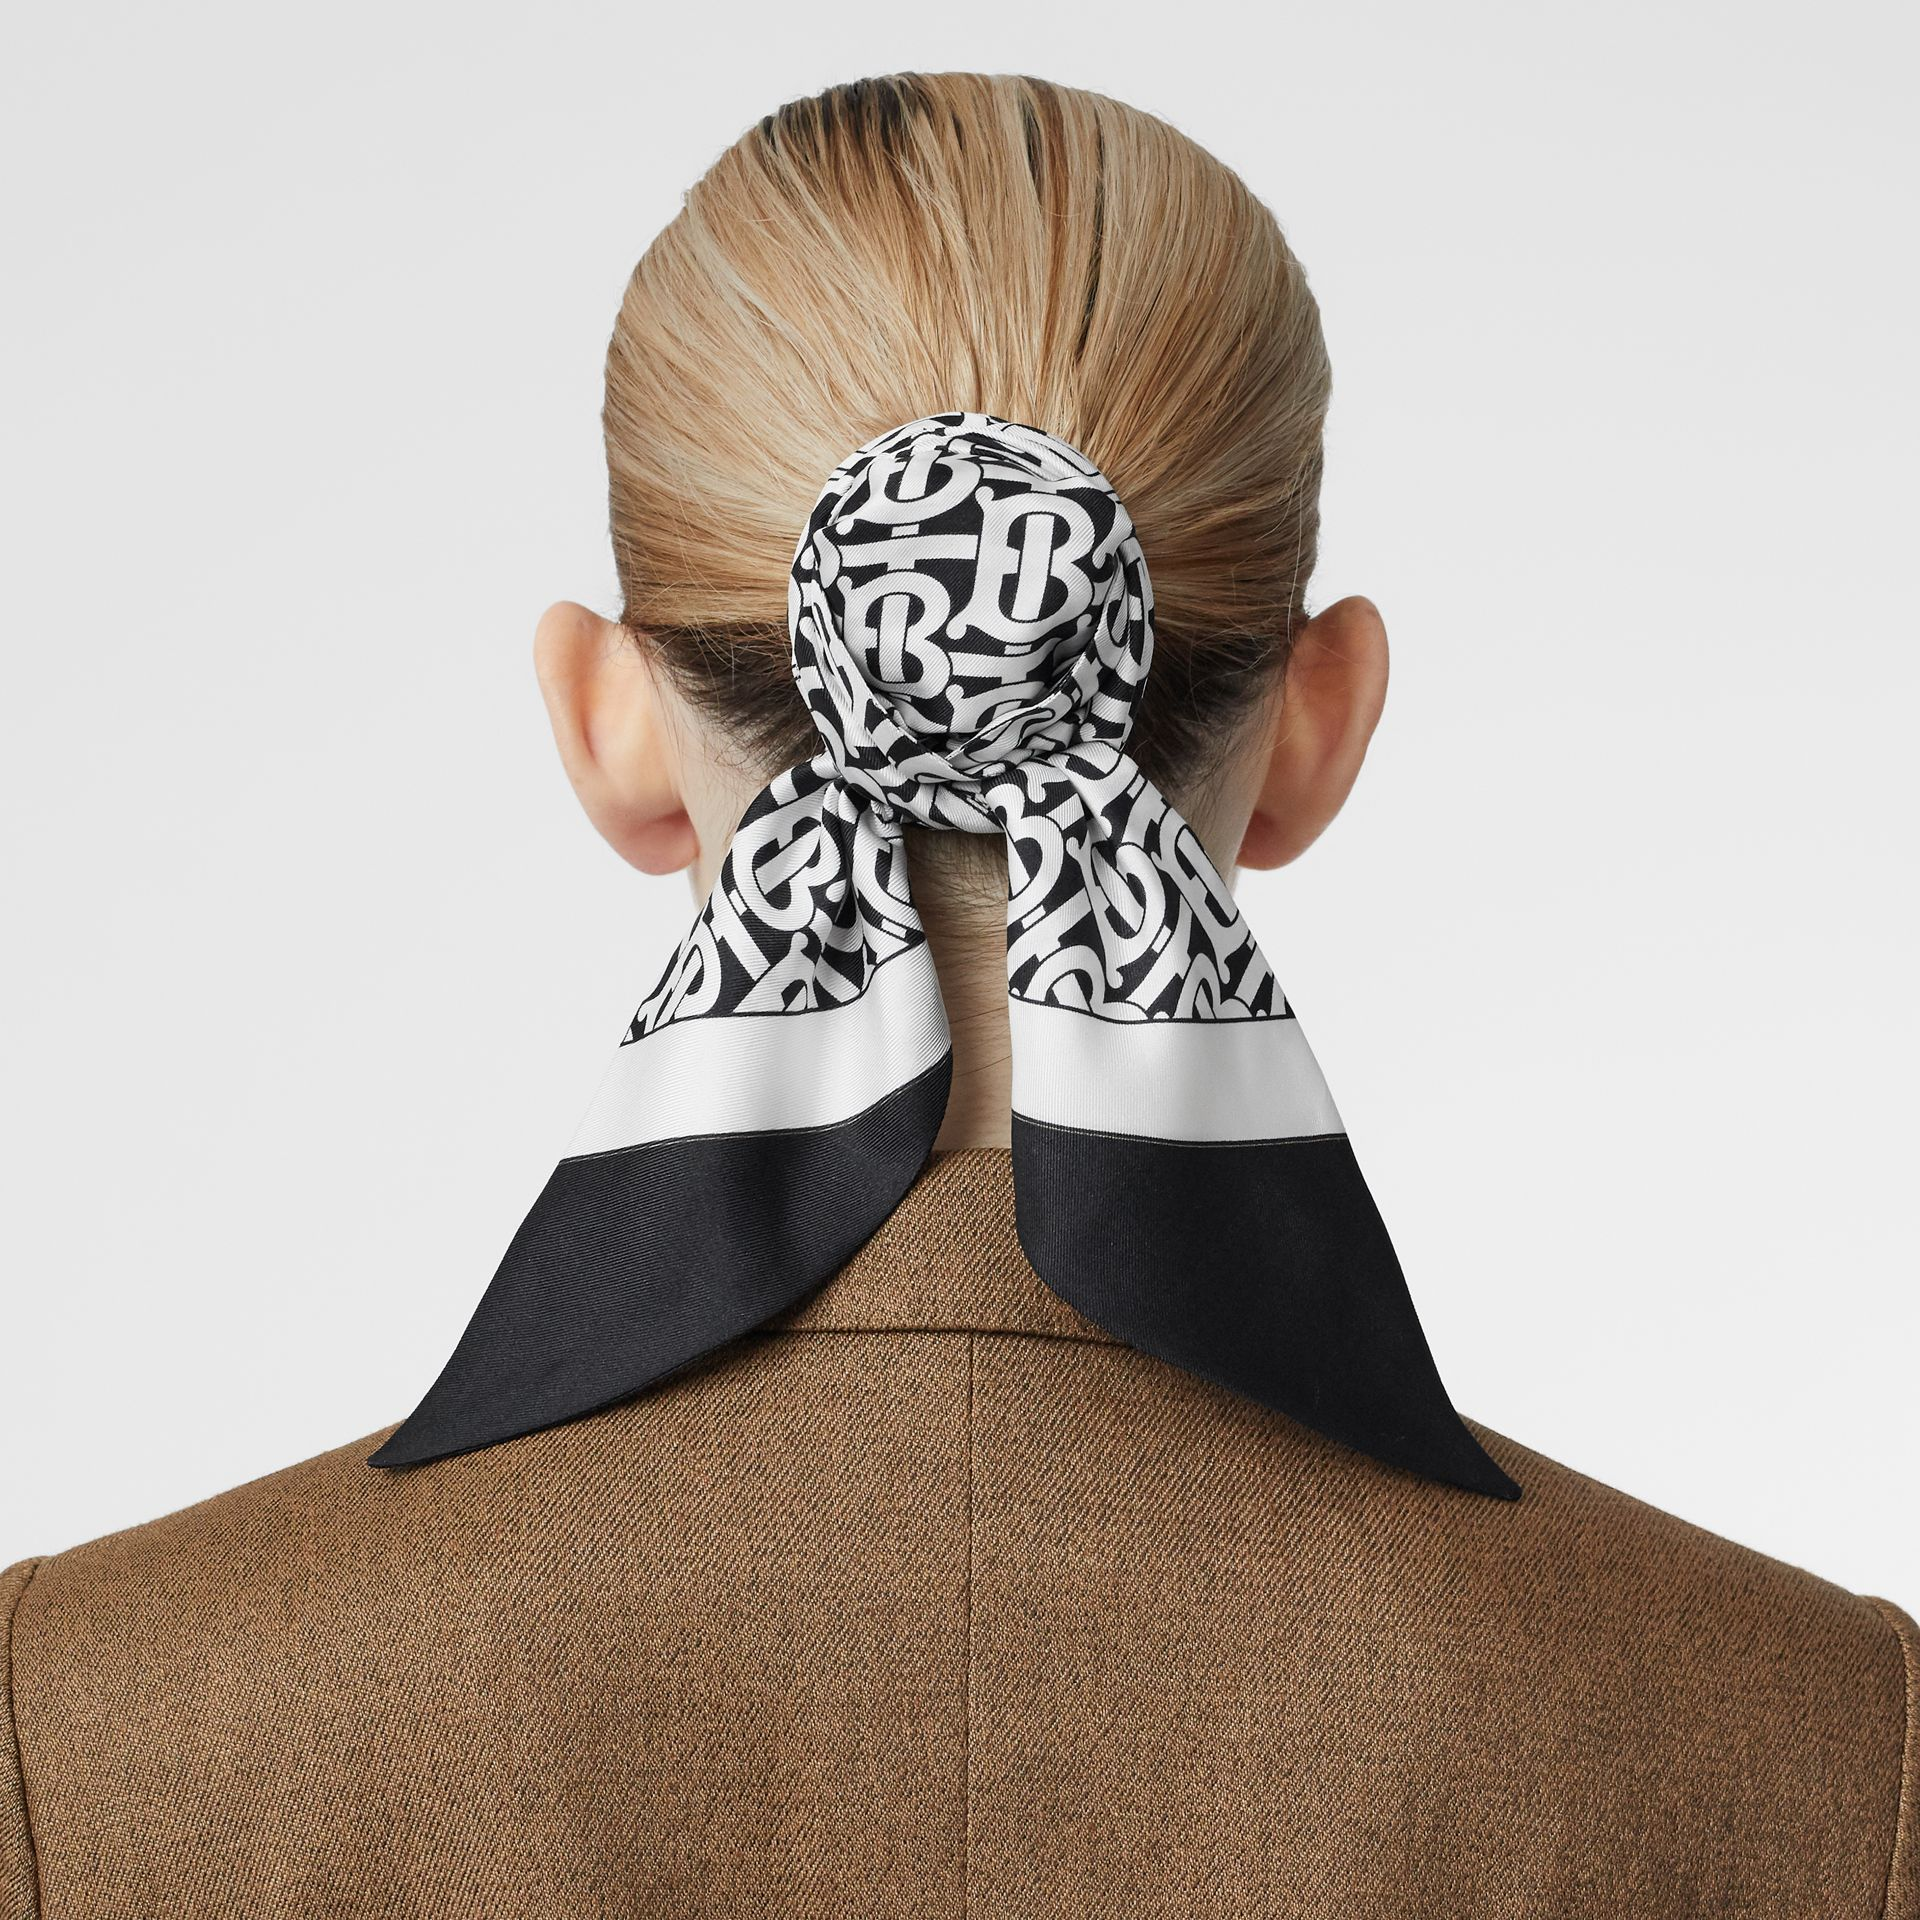 Monogram Print Silk Hair Scarf in Monochrome - Women | Burberry - gallery image 2